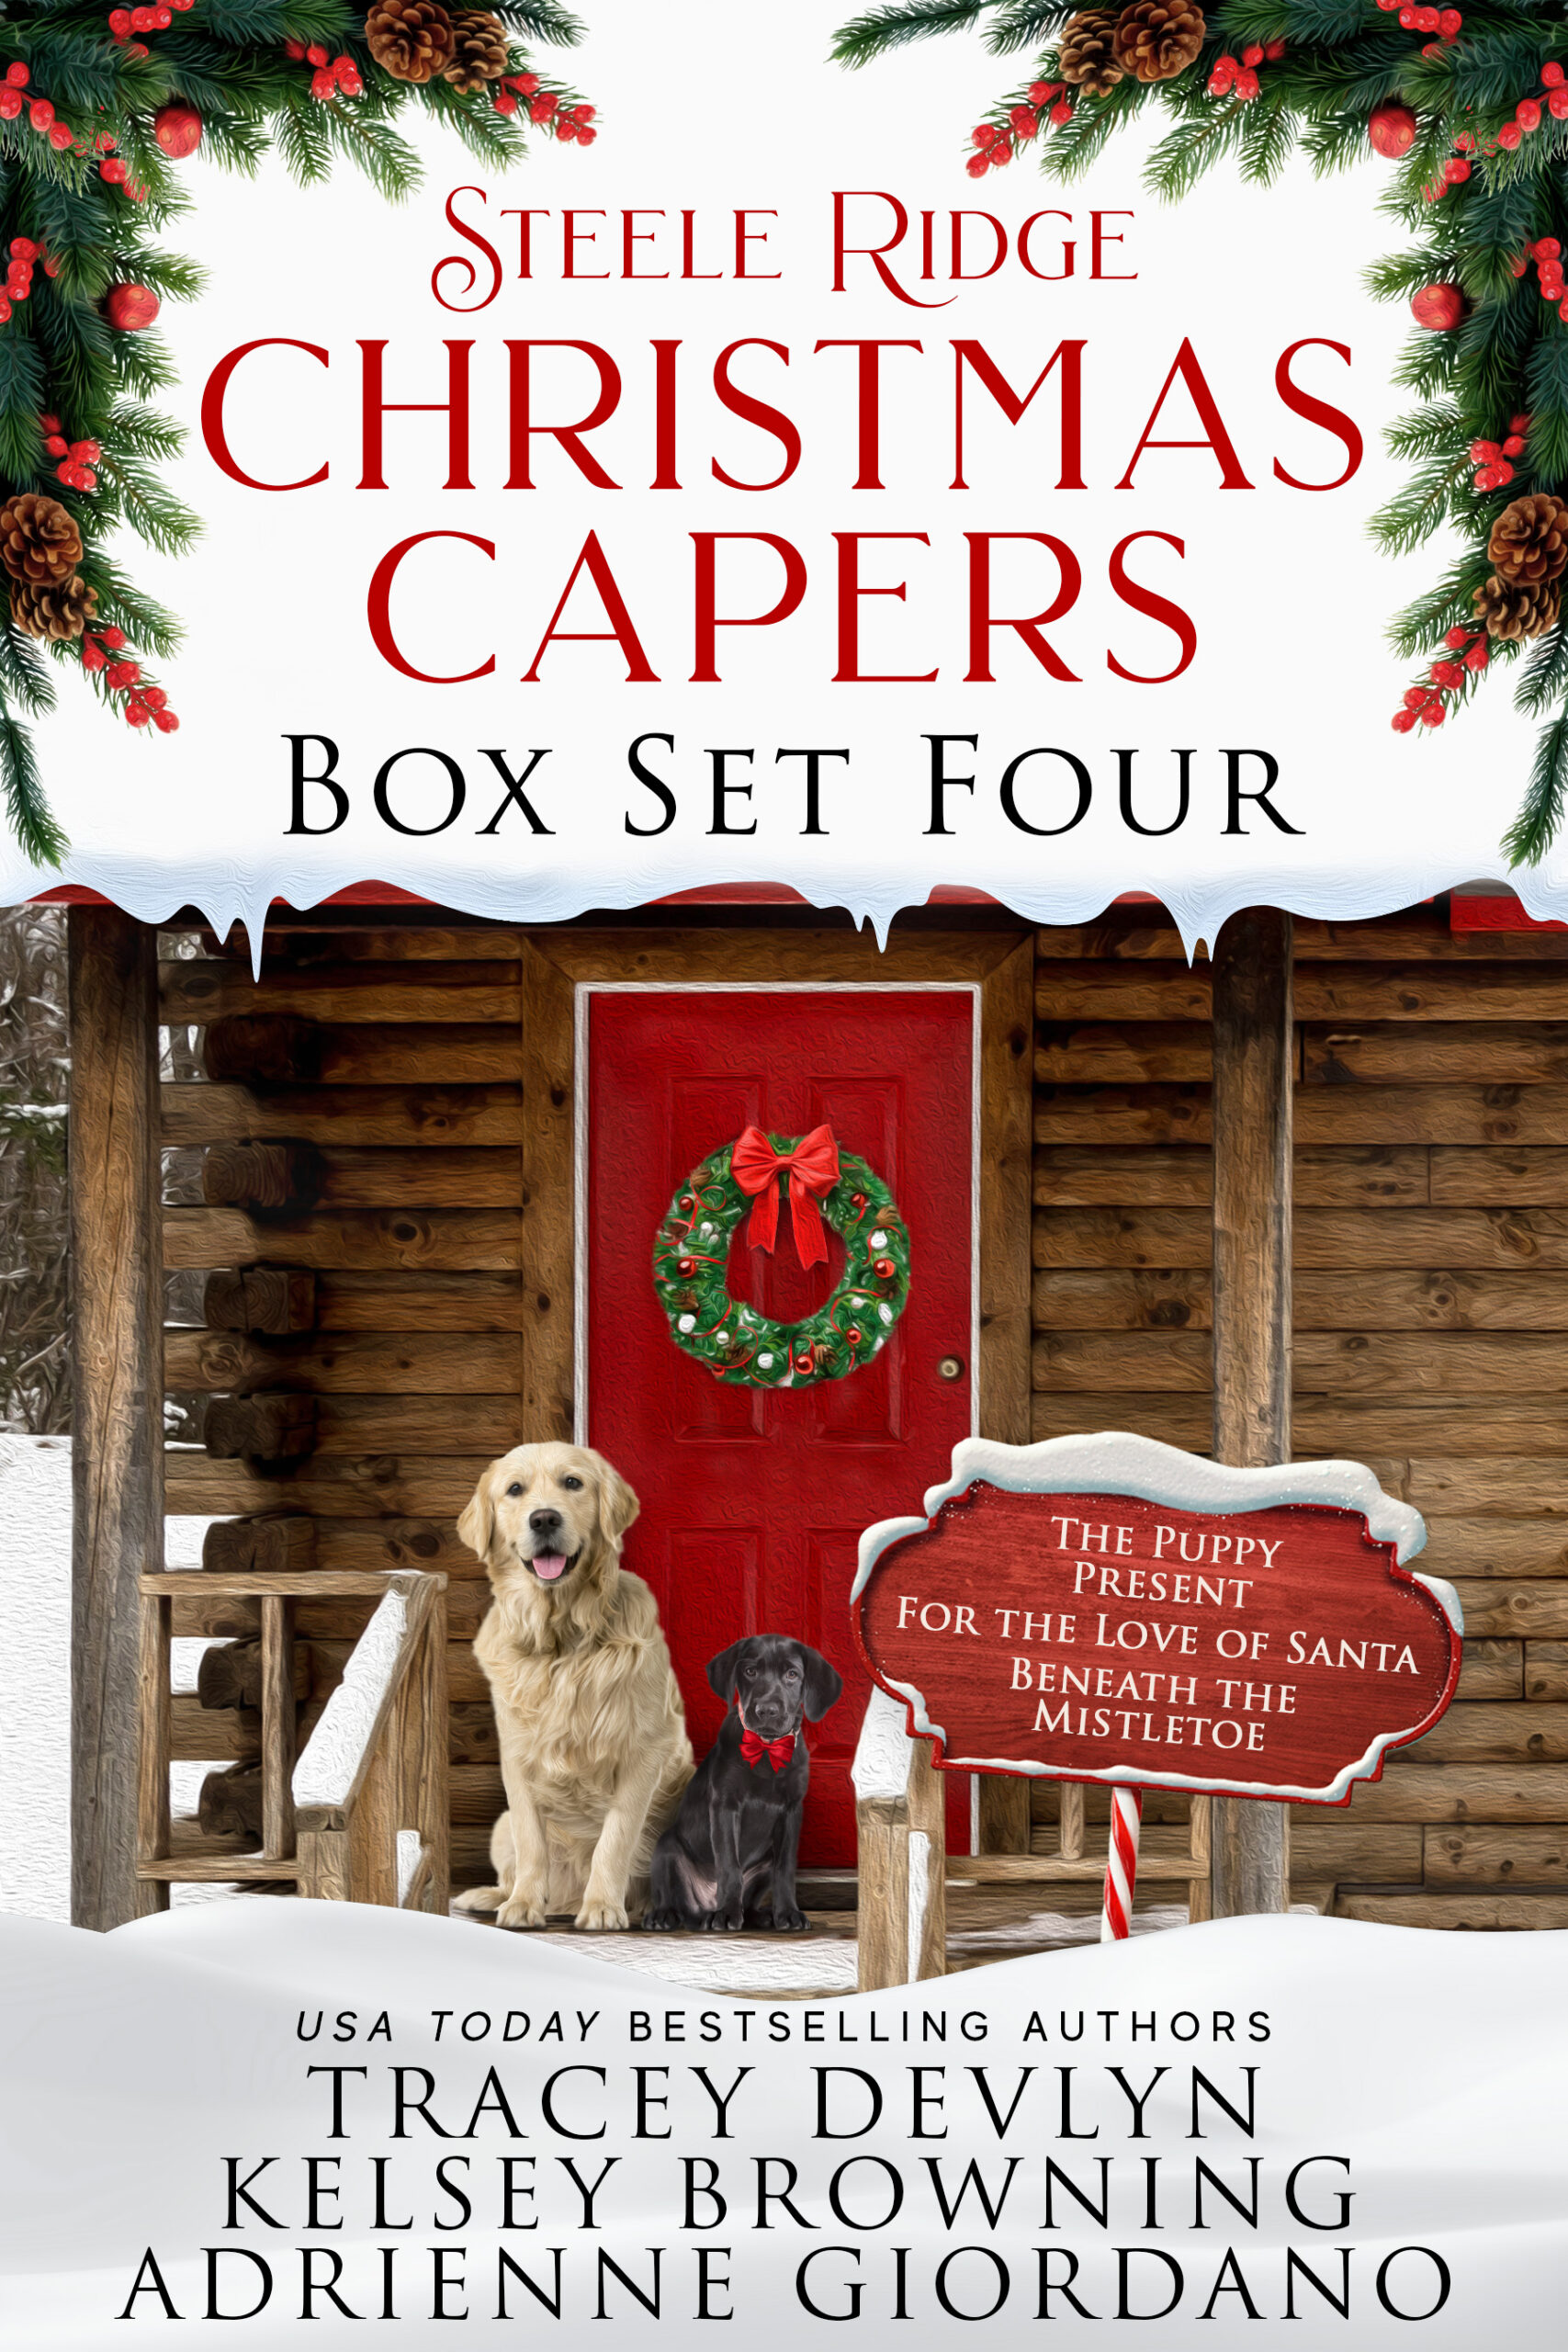 Christmas Capers Box Set #4 (Capers 10-12)